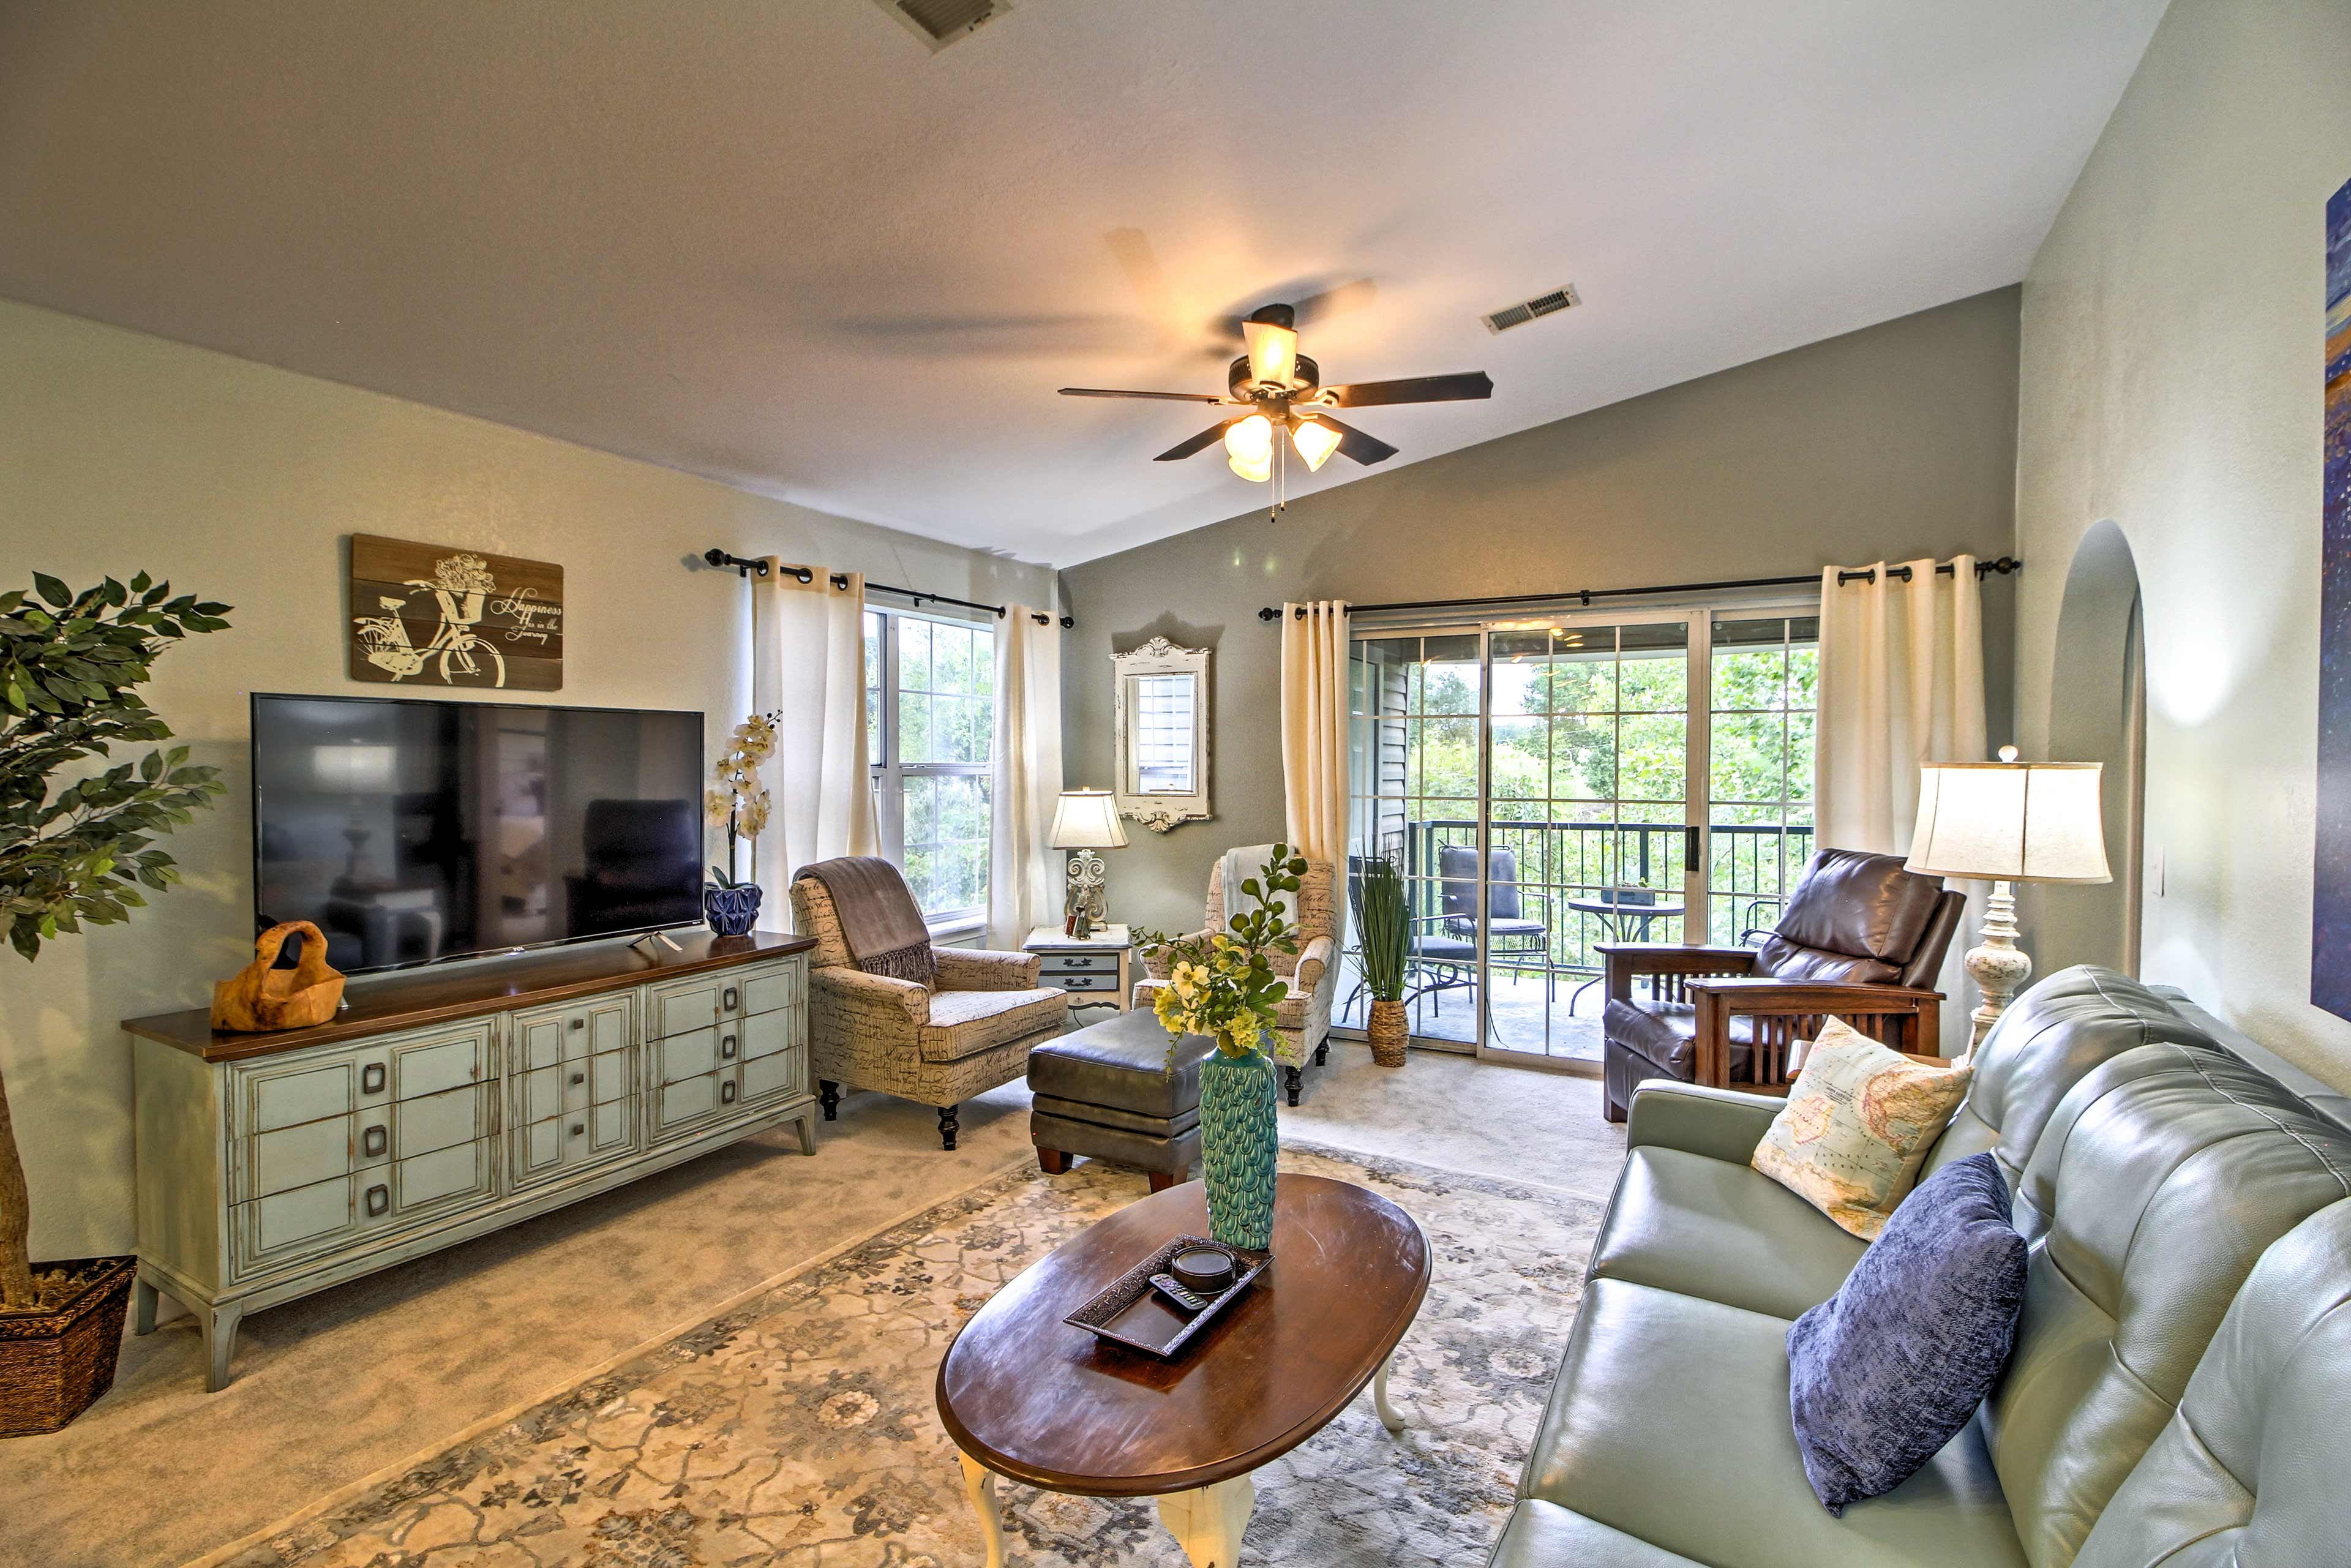 Check the weather on the flat-screen TV while you relax on the plush furnishings